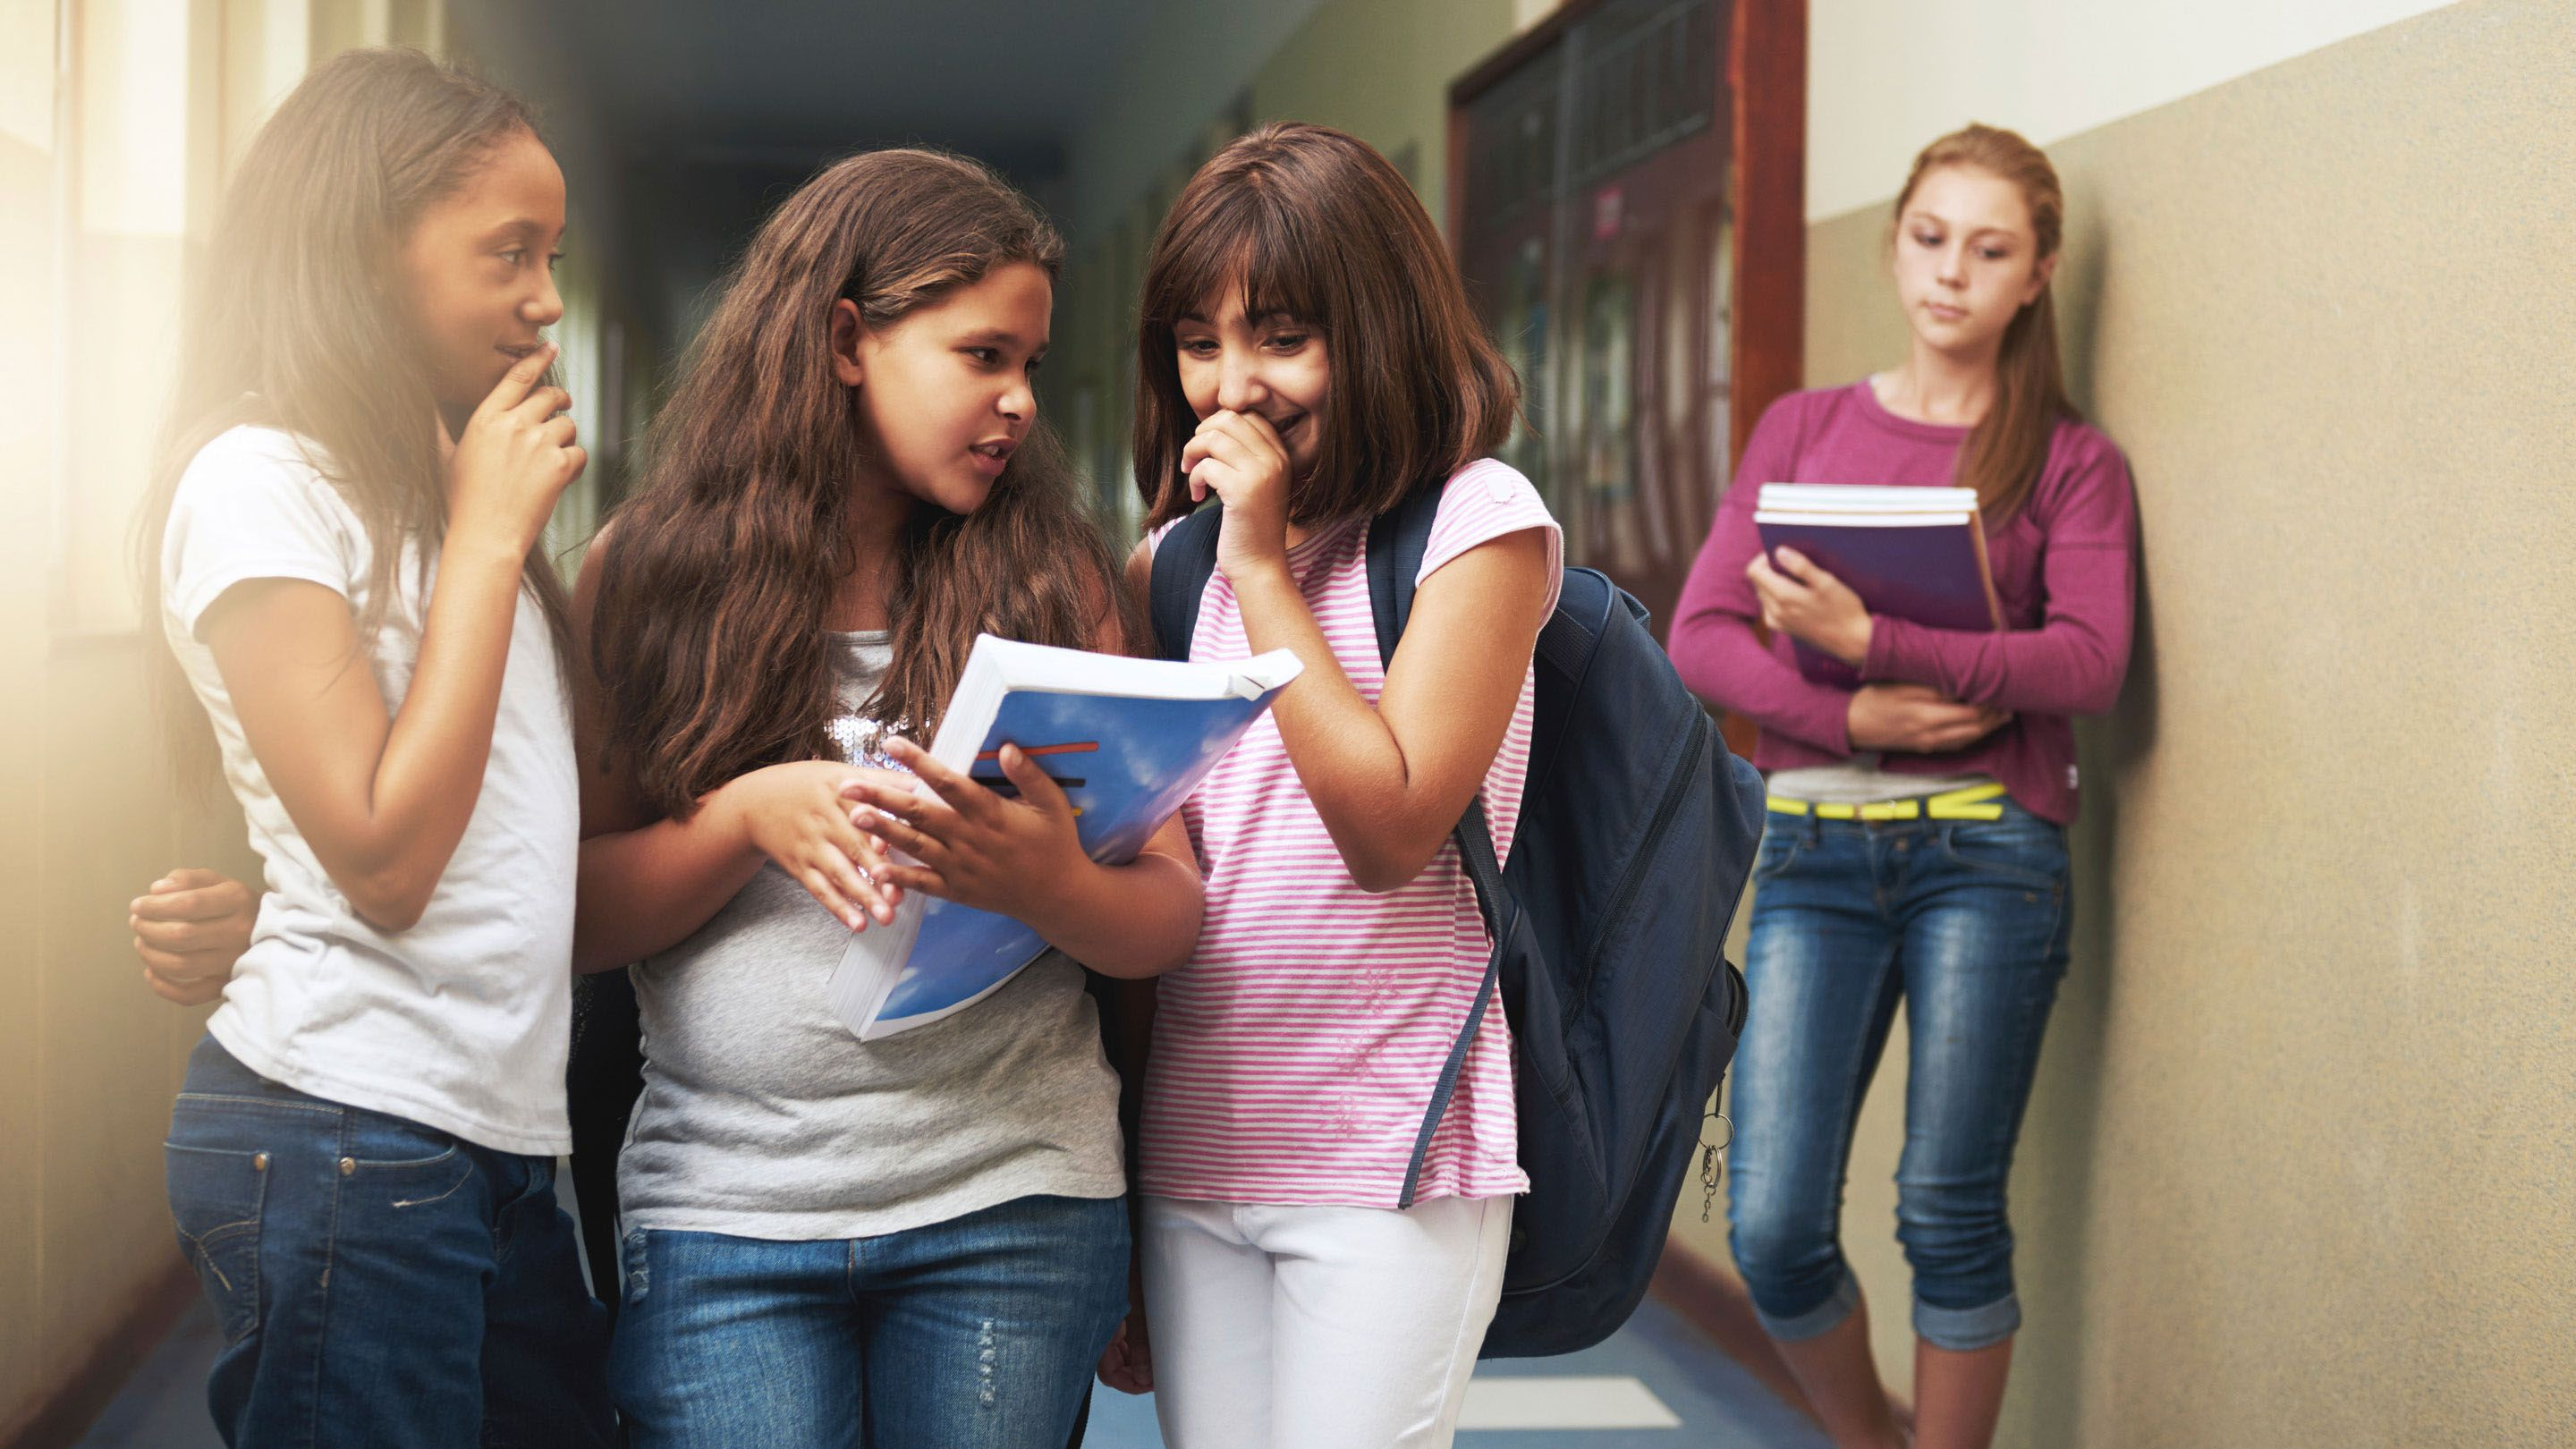 Three girls exclude another girl in a school hallway.